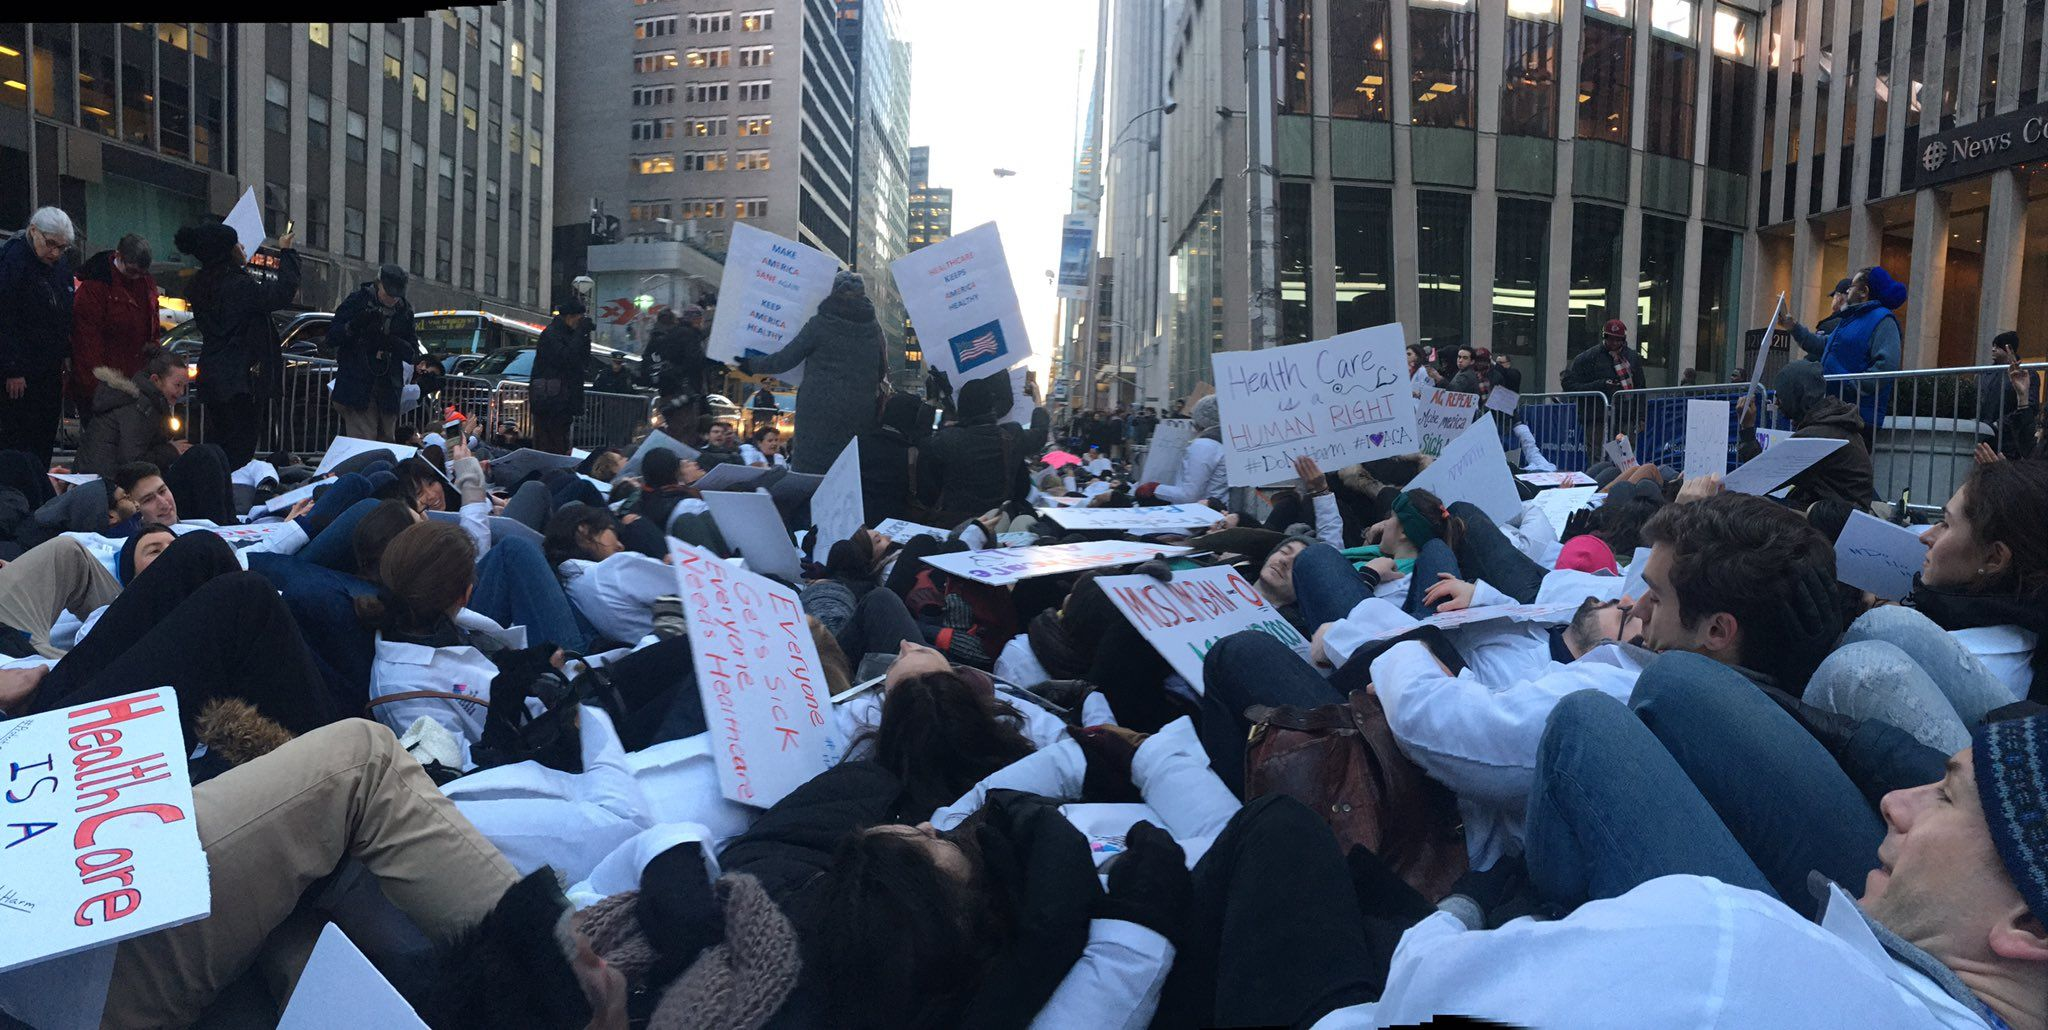 Die-in-protest-in-favor-of-Obamacare.jpg